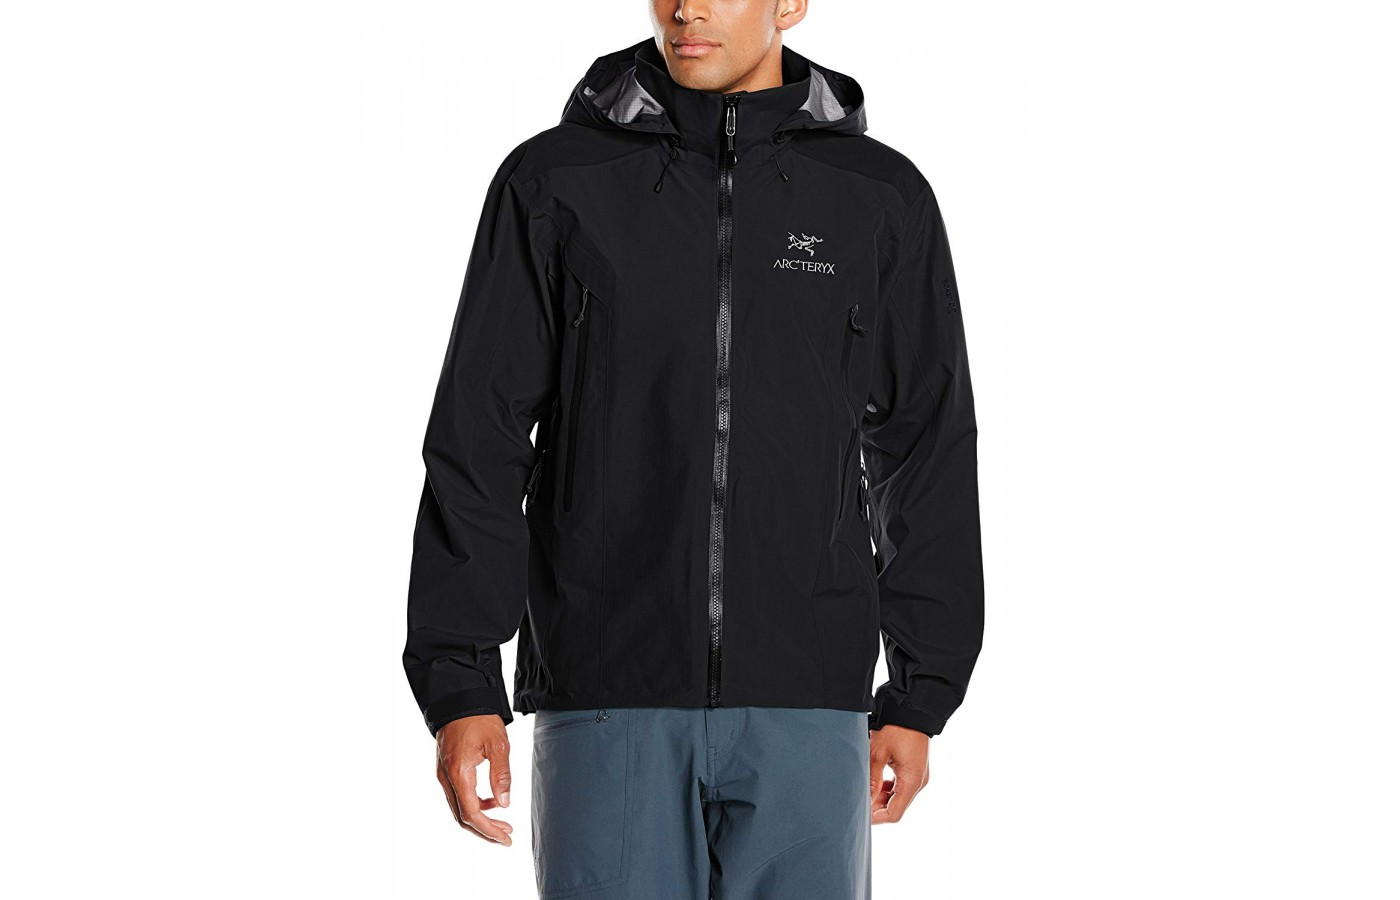 The Arc'teryx Beta AR has been in the company's jacket lineup for about 13 years.